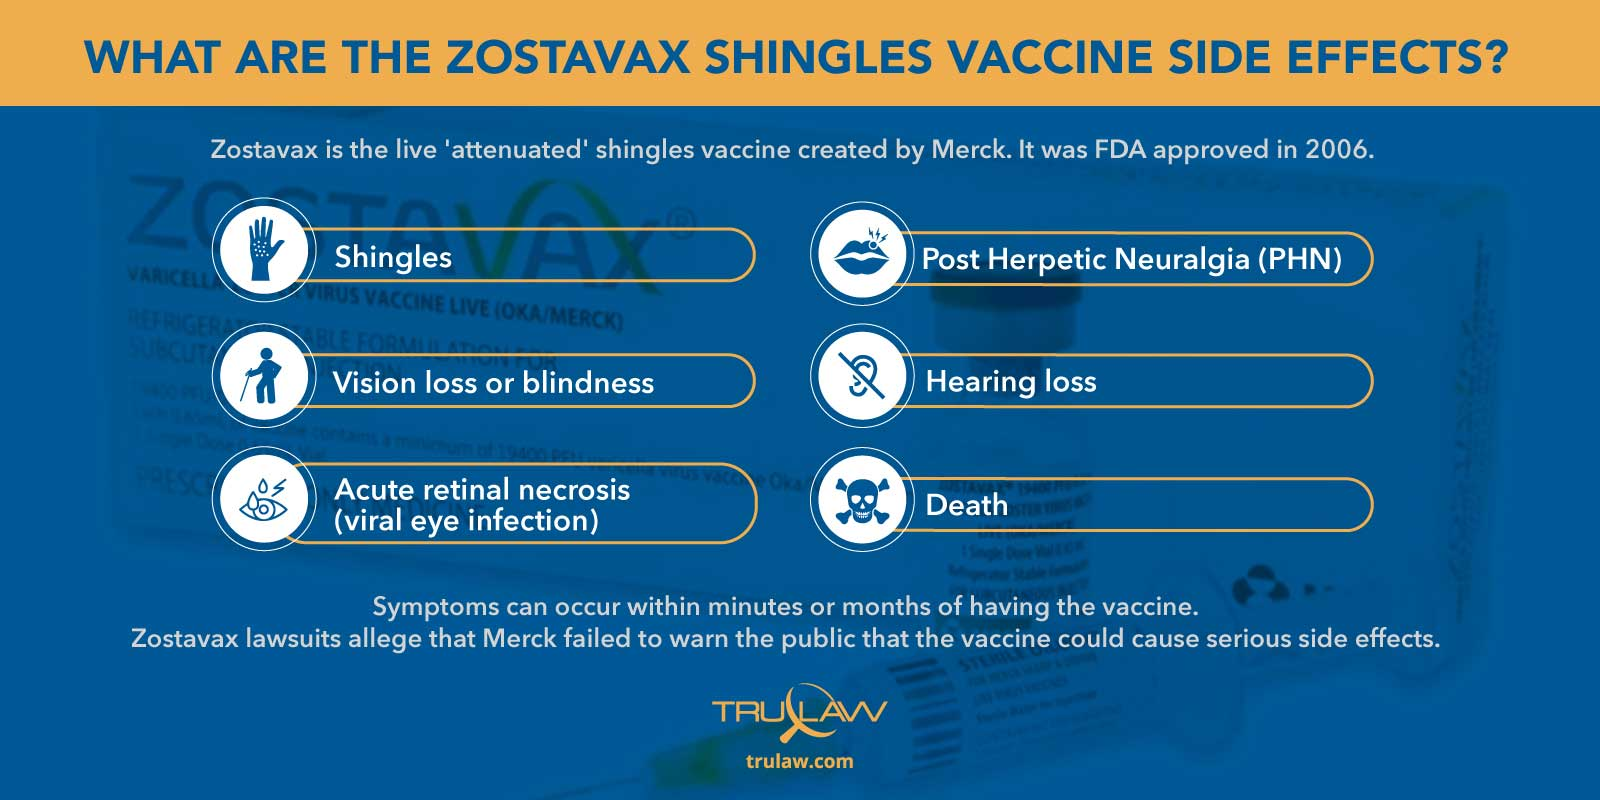 Zostavax-shingles-vaccine-side-effects-lawsuit-infographic